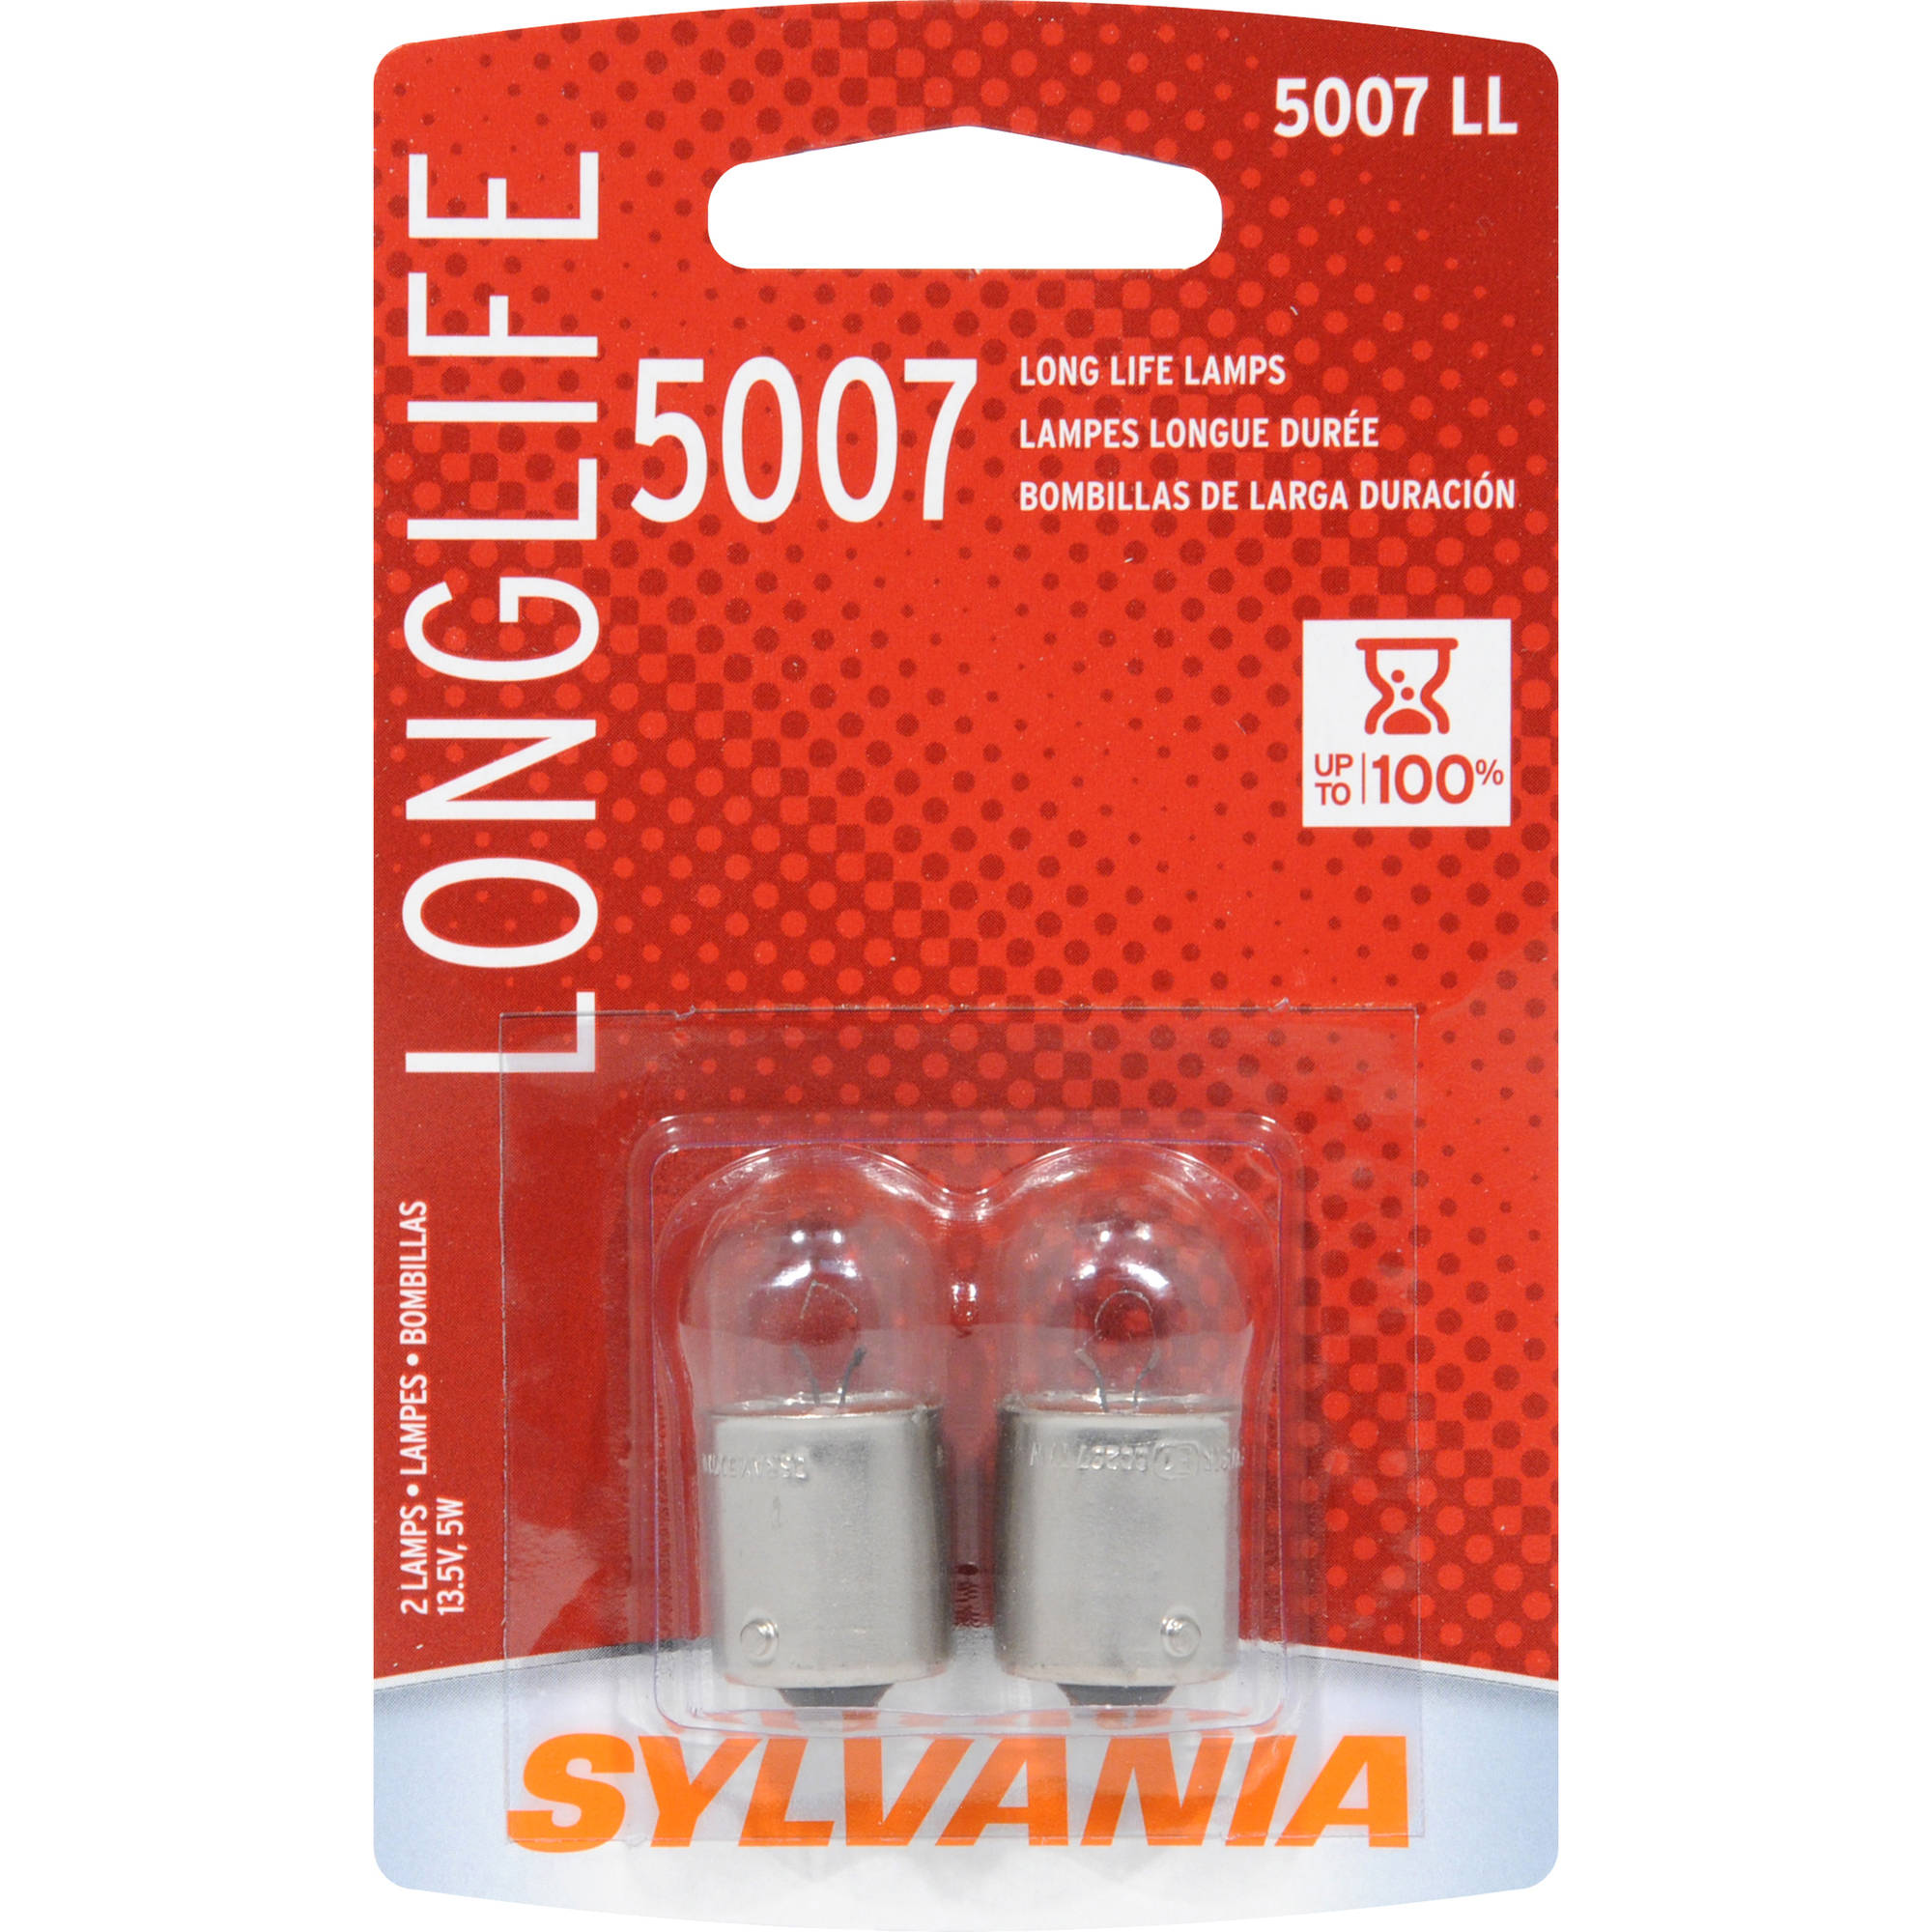 Sylvania 5007 Long-Life Miniature Bulb, Twin Pack